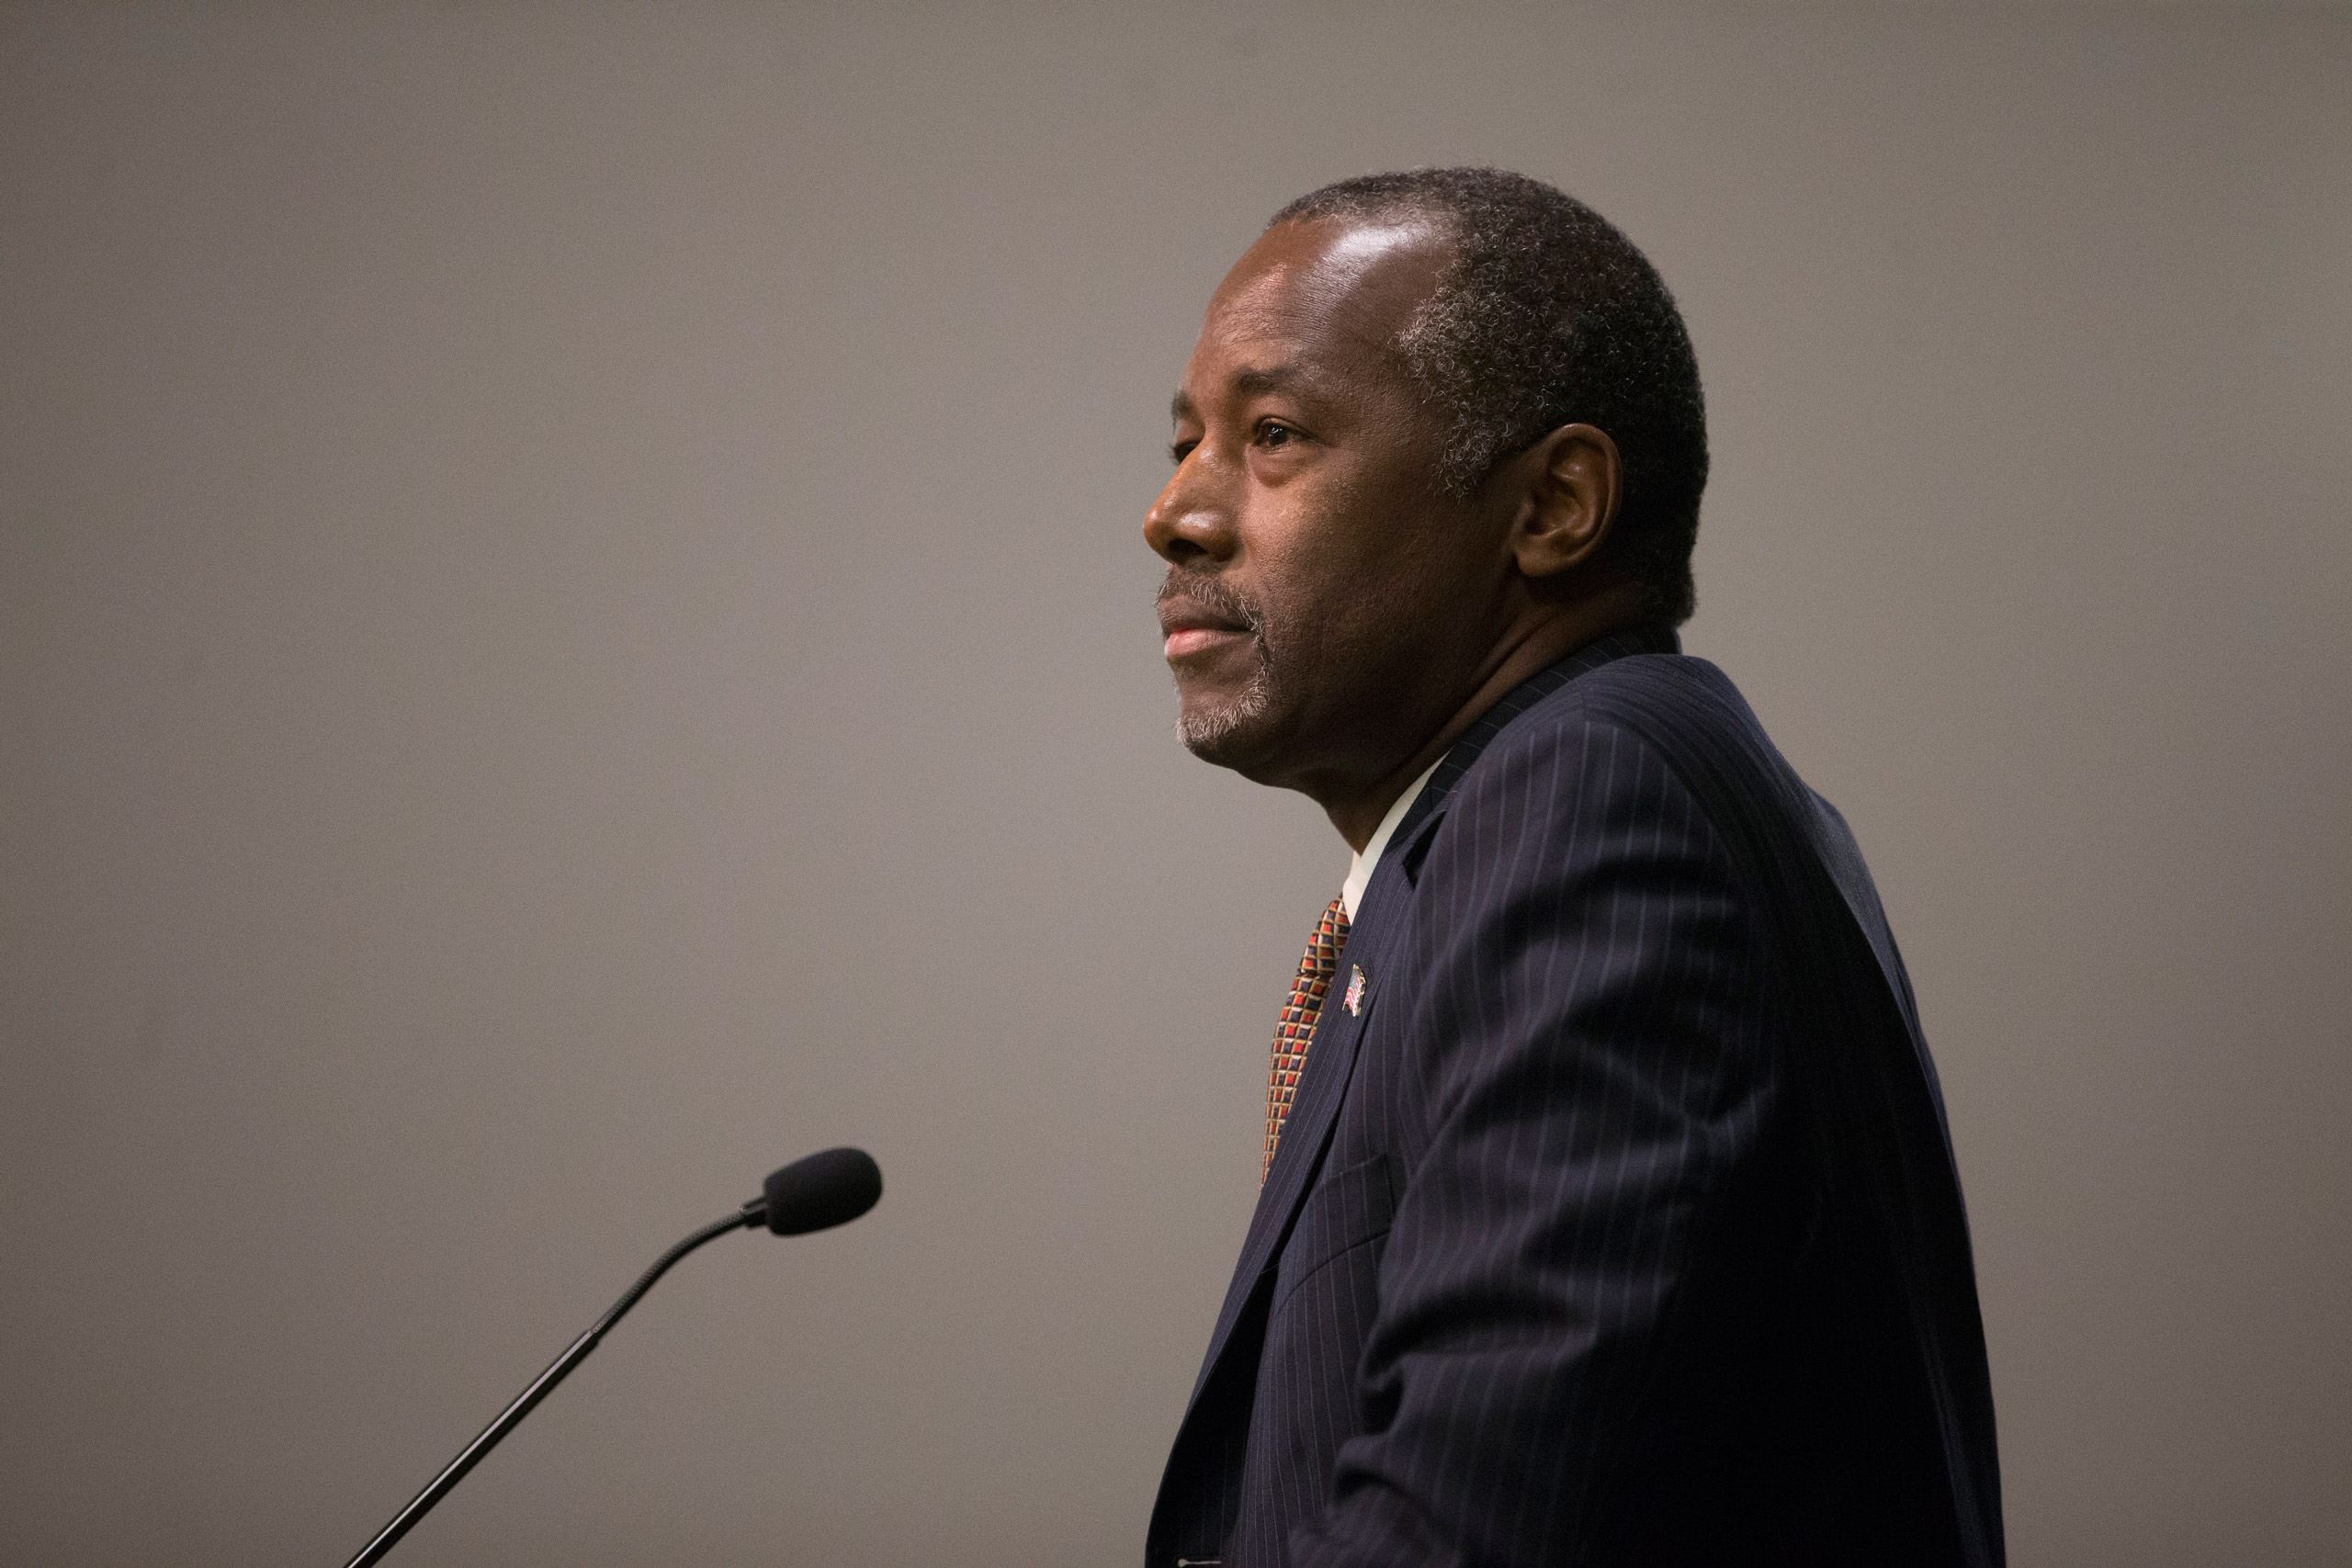 Republican presidential candidate Ben Carson takes questions at a news conference at the Sharonville Convention Center in Cincinnati on Sept. 22, 2015.